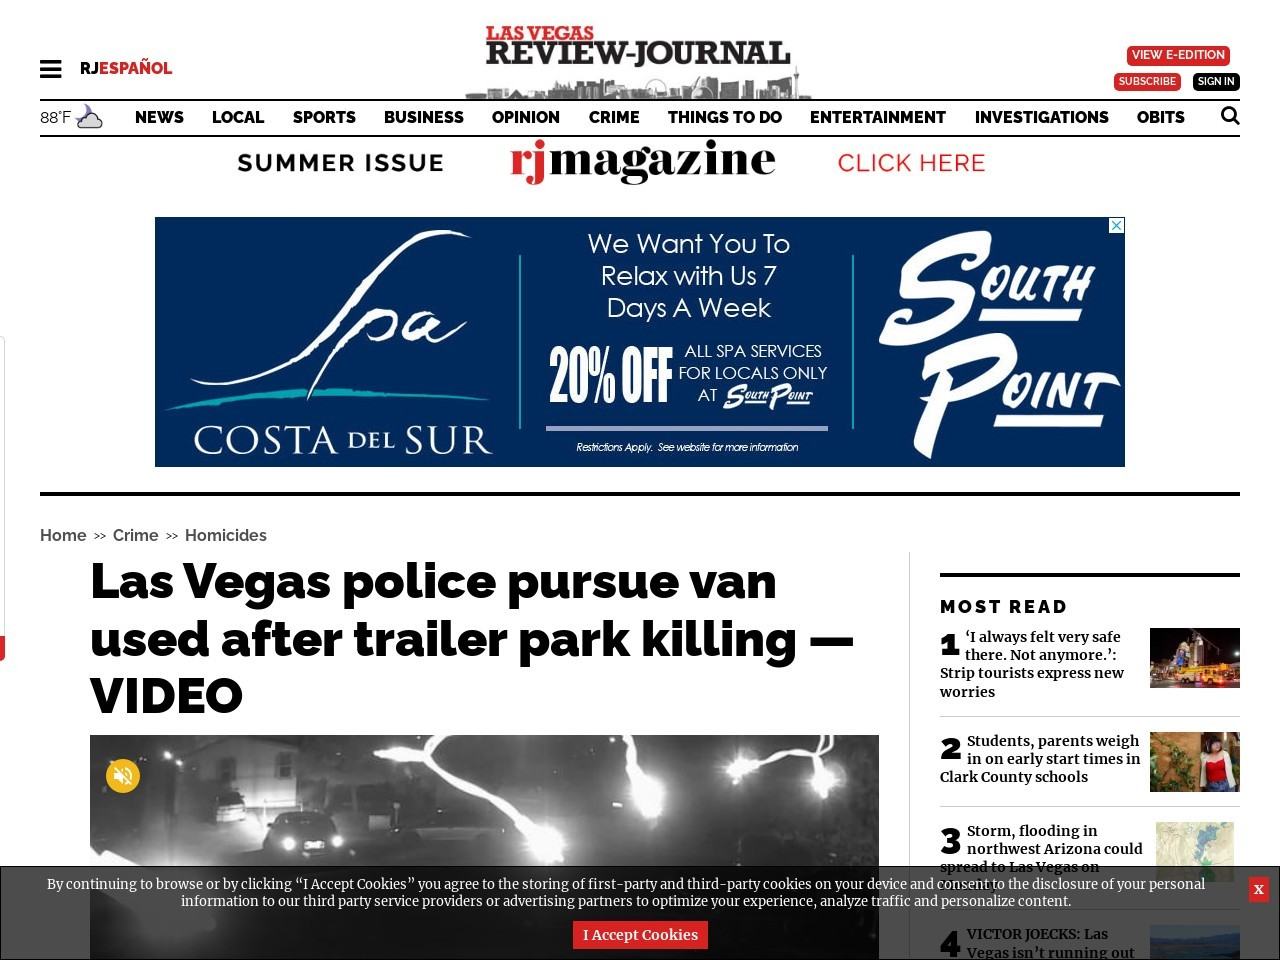 Las Vegas police pursue van used after trailer park killing